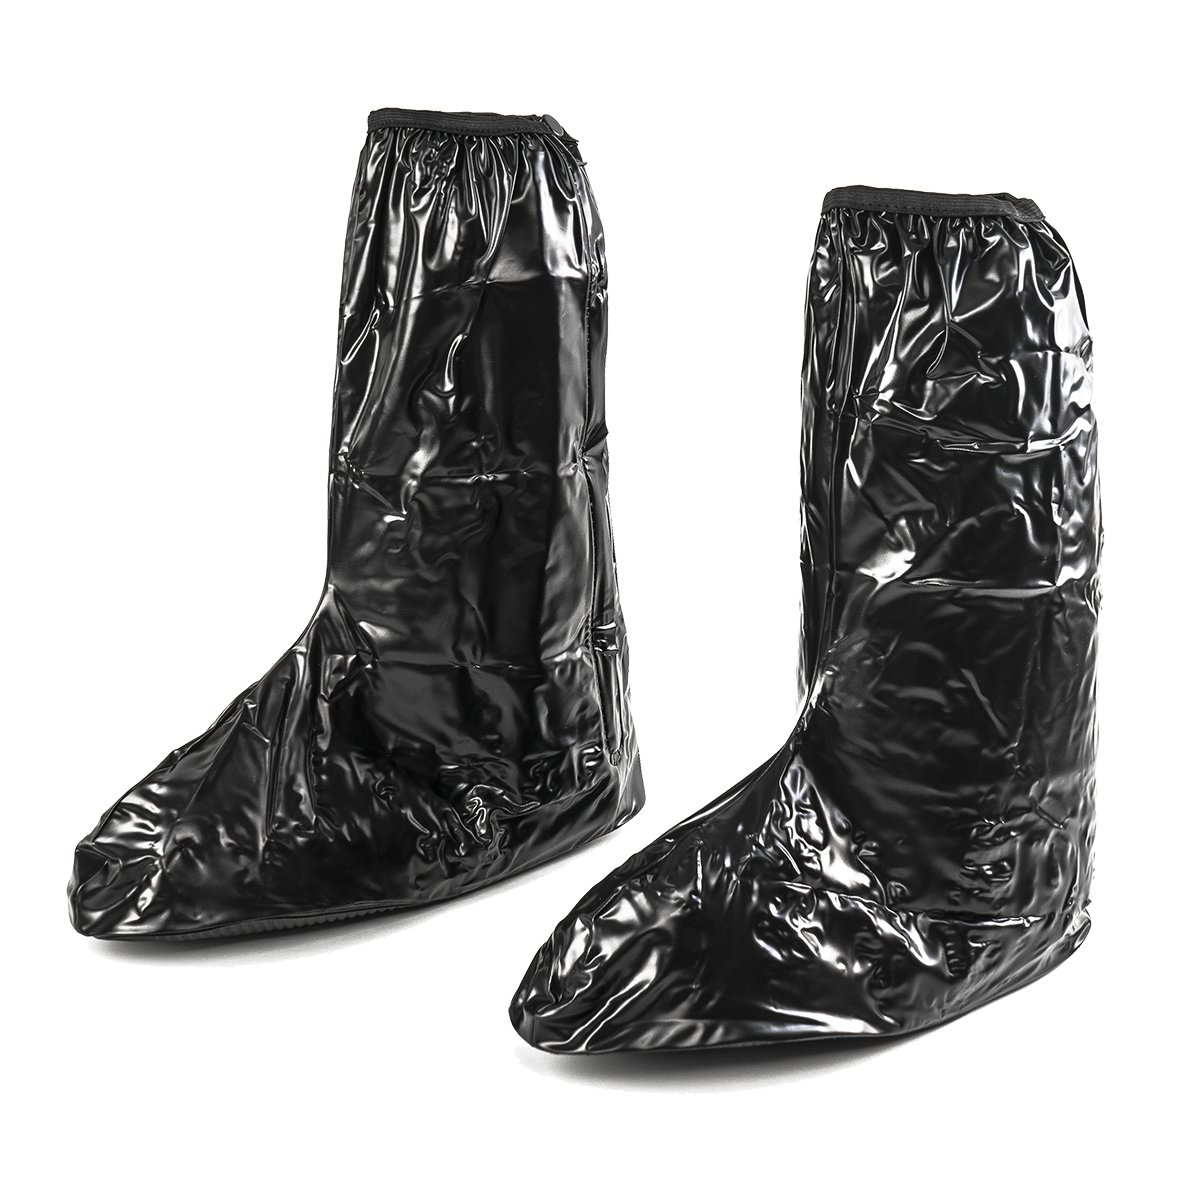 KT-Global Hot Black Waterproof Motor Rain Boots Outdoor Motorcycle Cycling Protective Gear Bike Riding Rain Boot Shoe Cover Anti Slip Anti-skid Footwear (Black2)